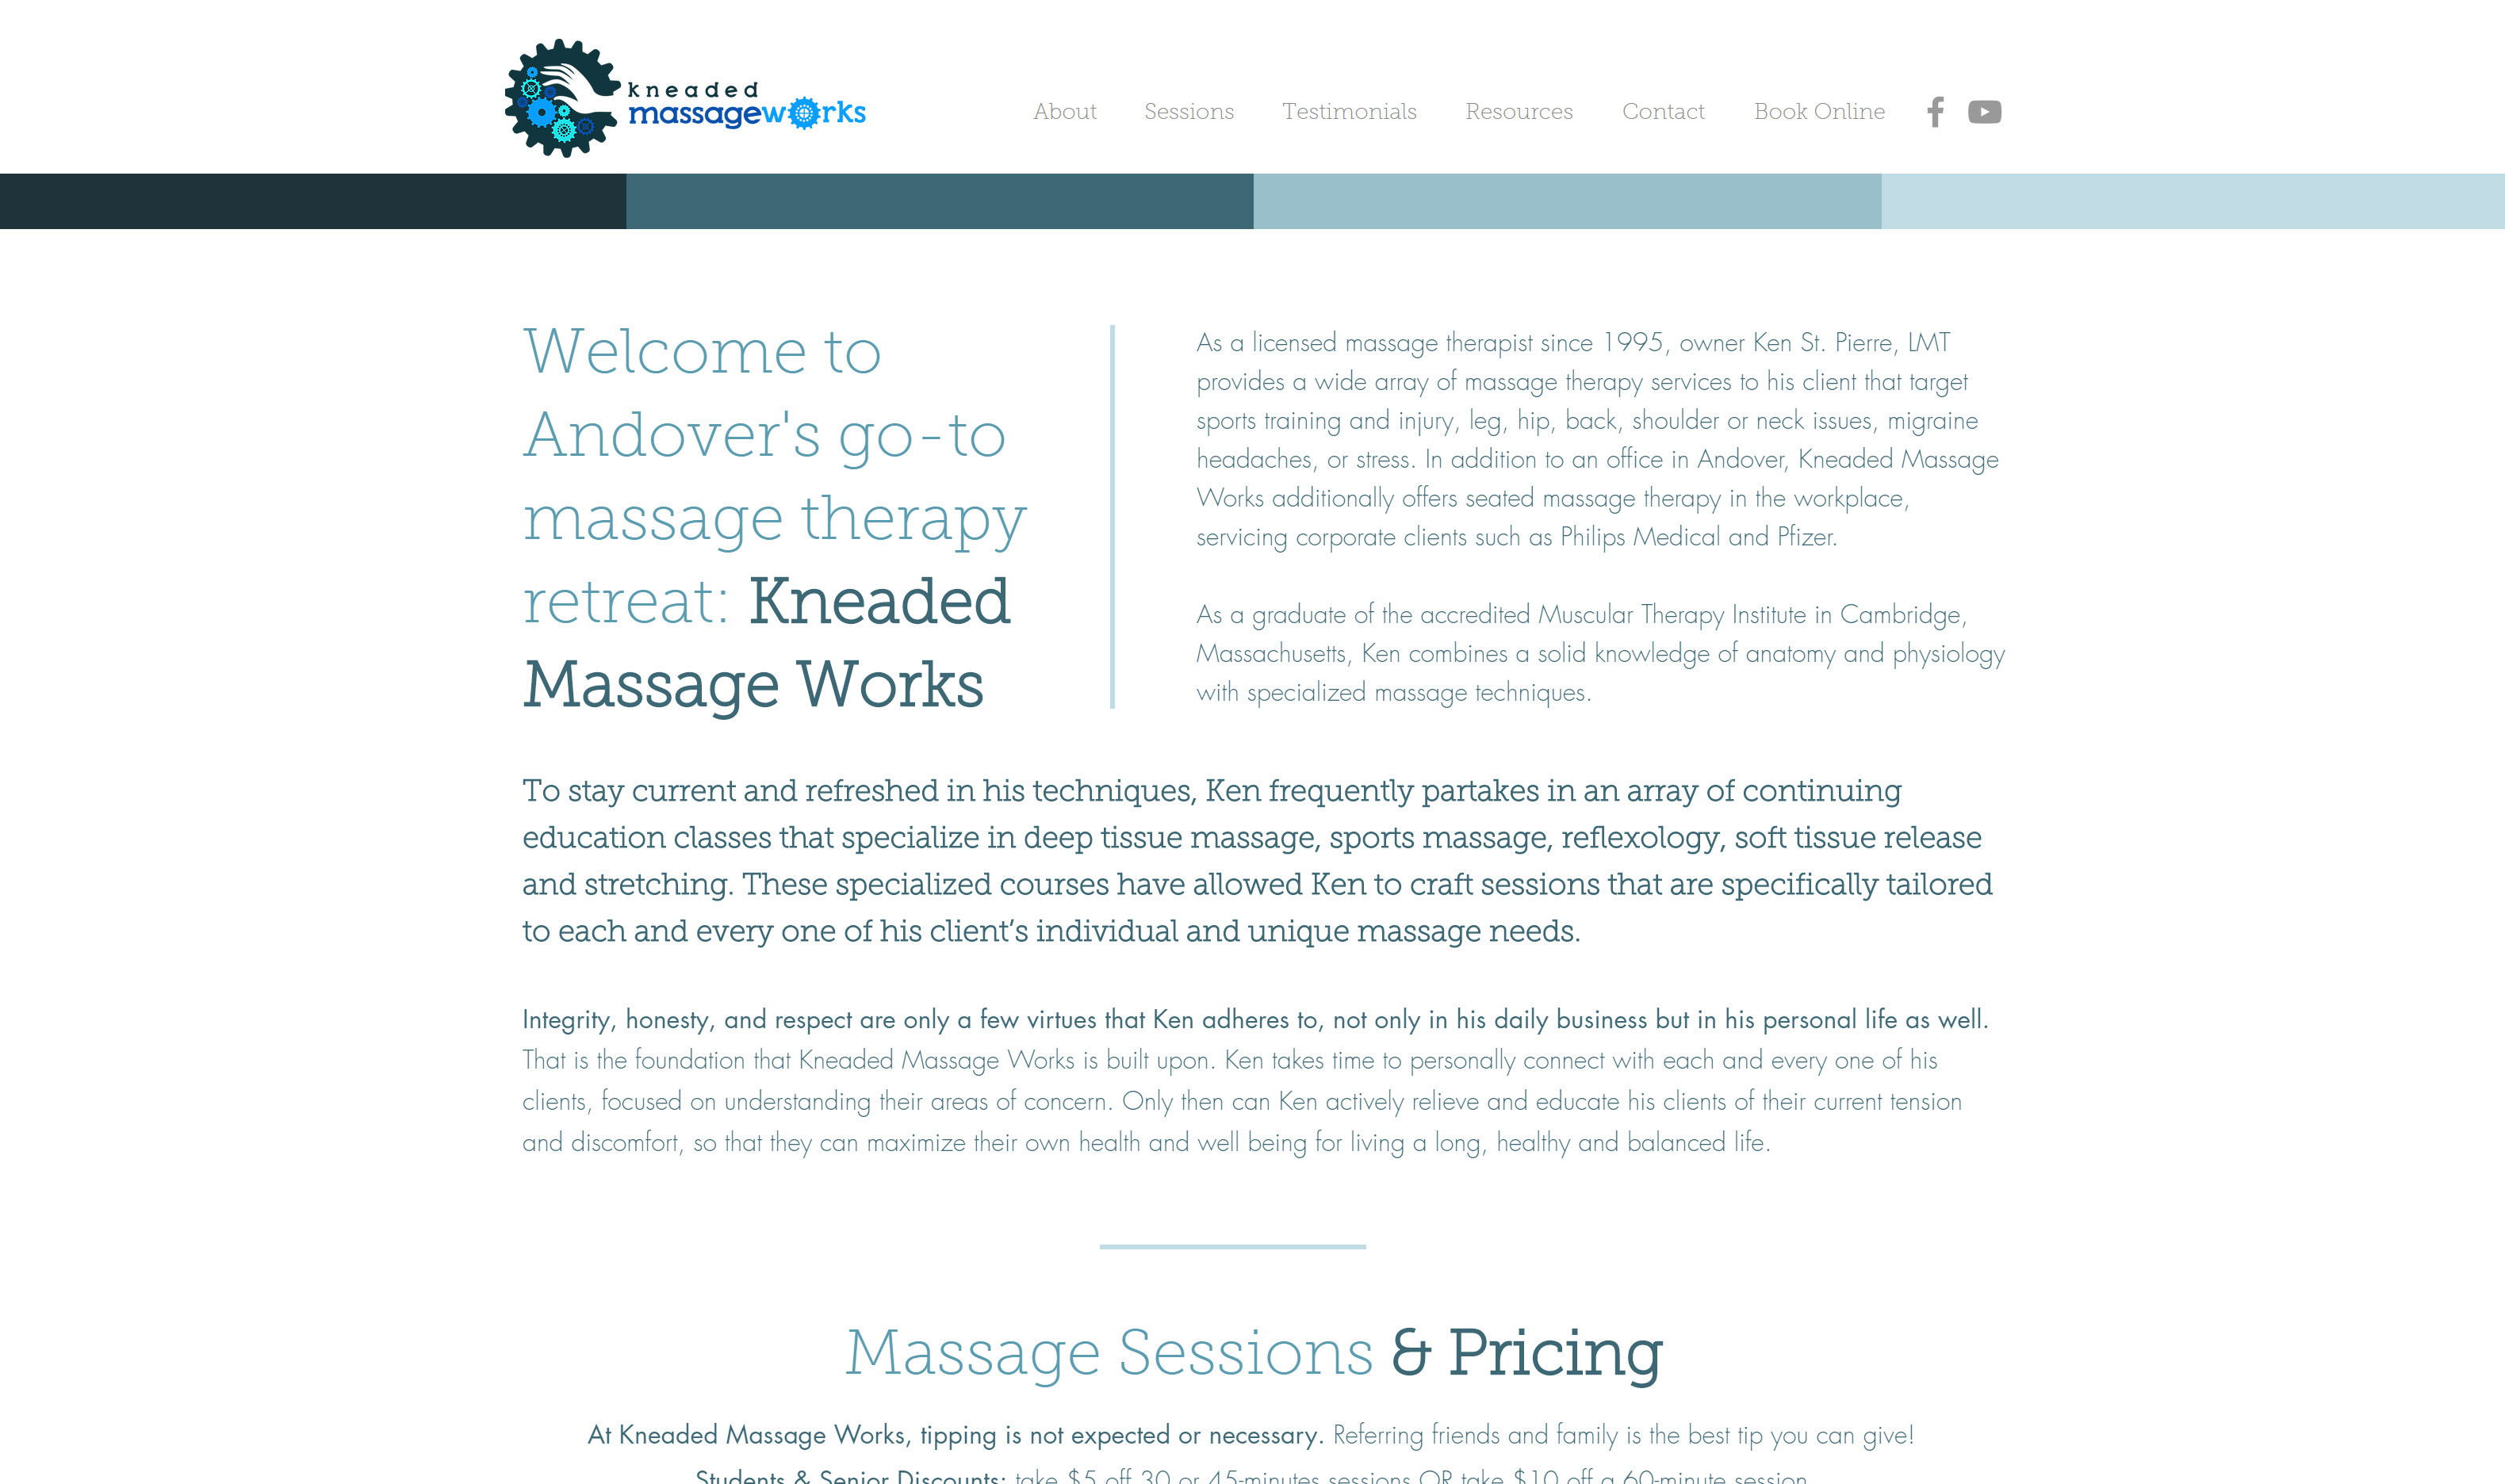 Sarah-Cas-Branding-and-Design-Website-Design-Kneaded-Massage-Works-5